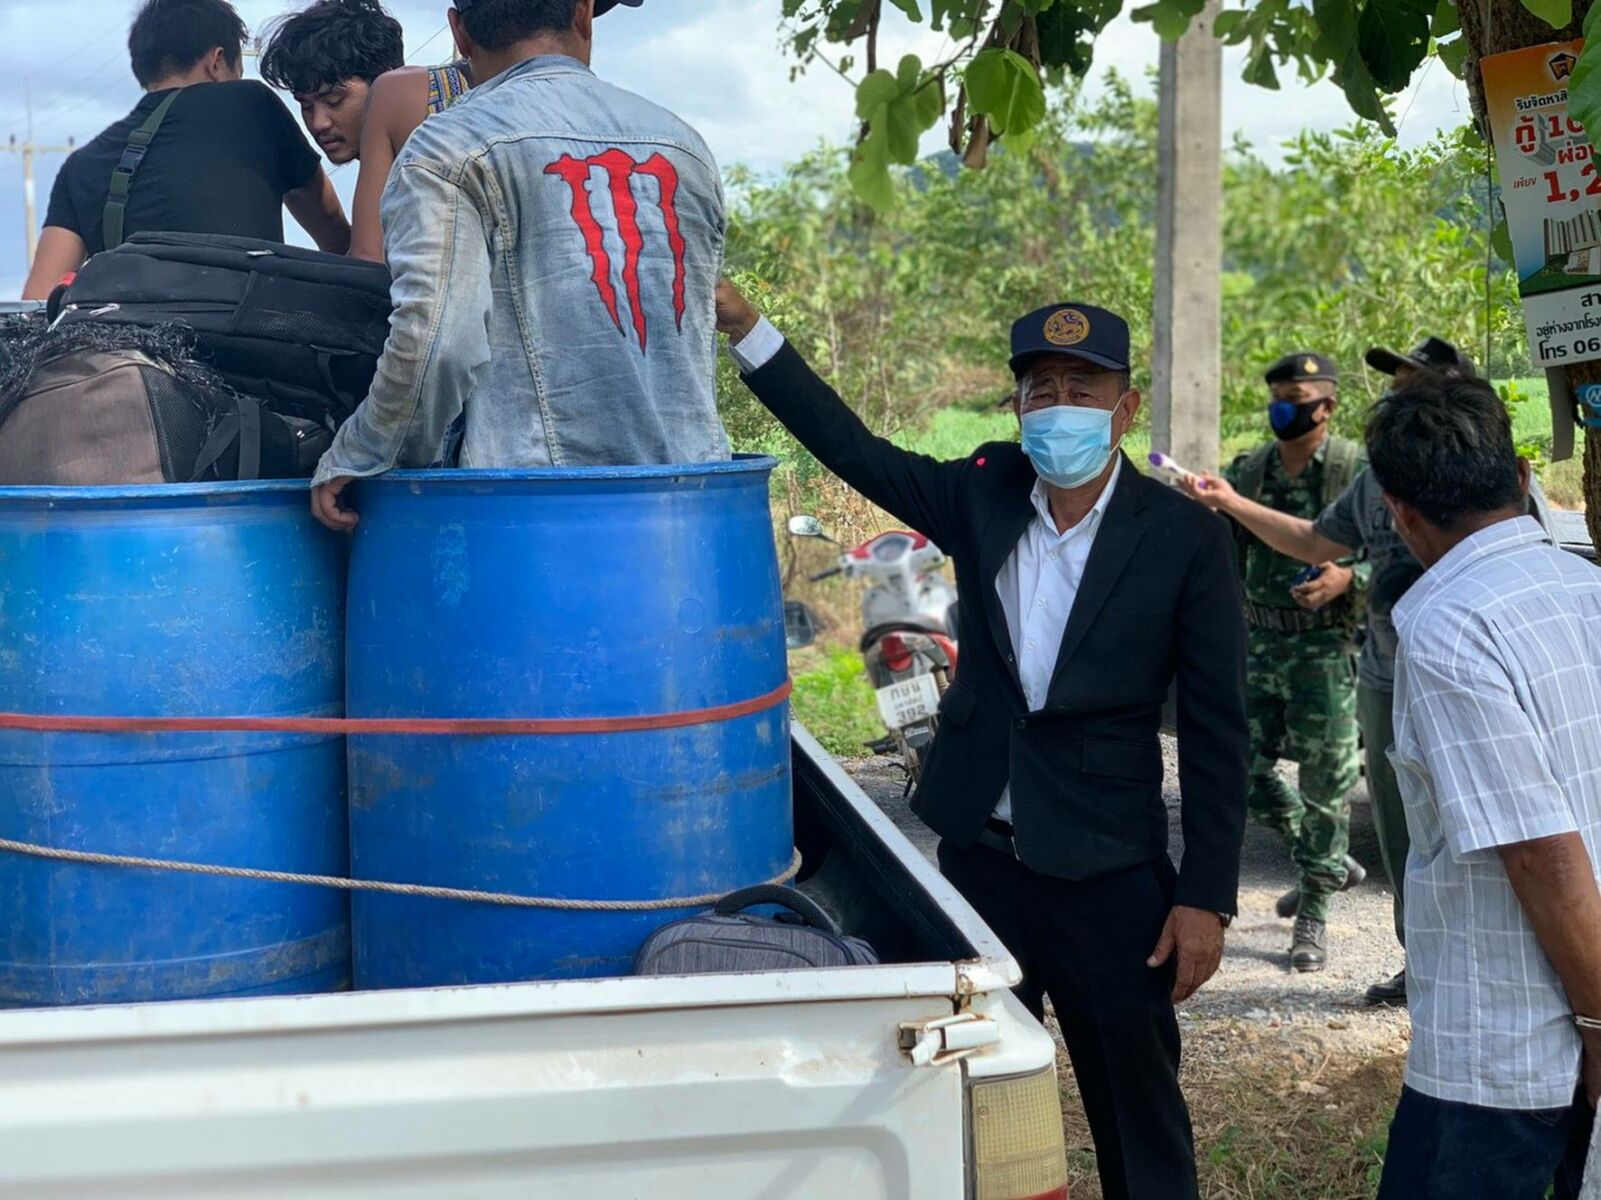 Thai-Myanmar border patrol tightens, 11 Burmese migrants caught hiding in containers | News by Thaiger